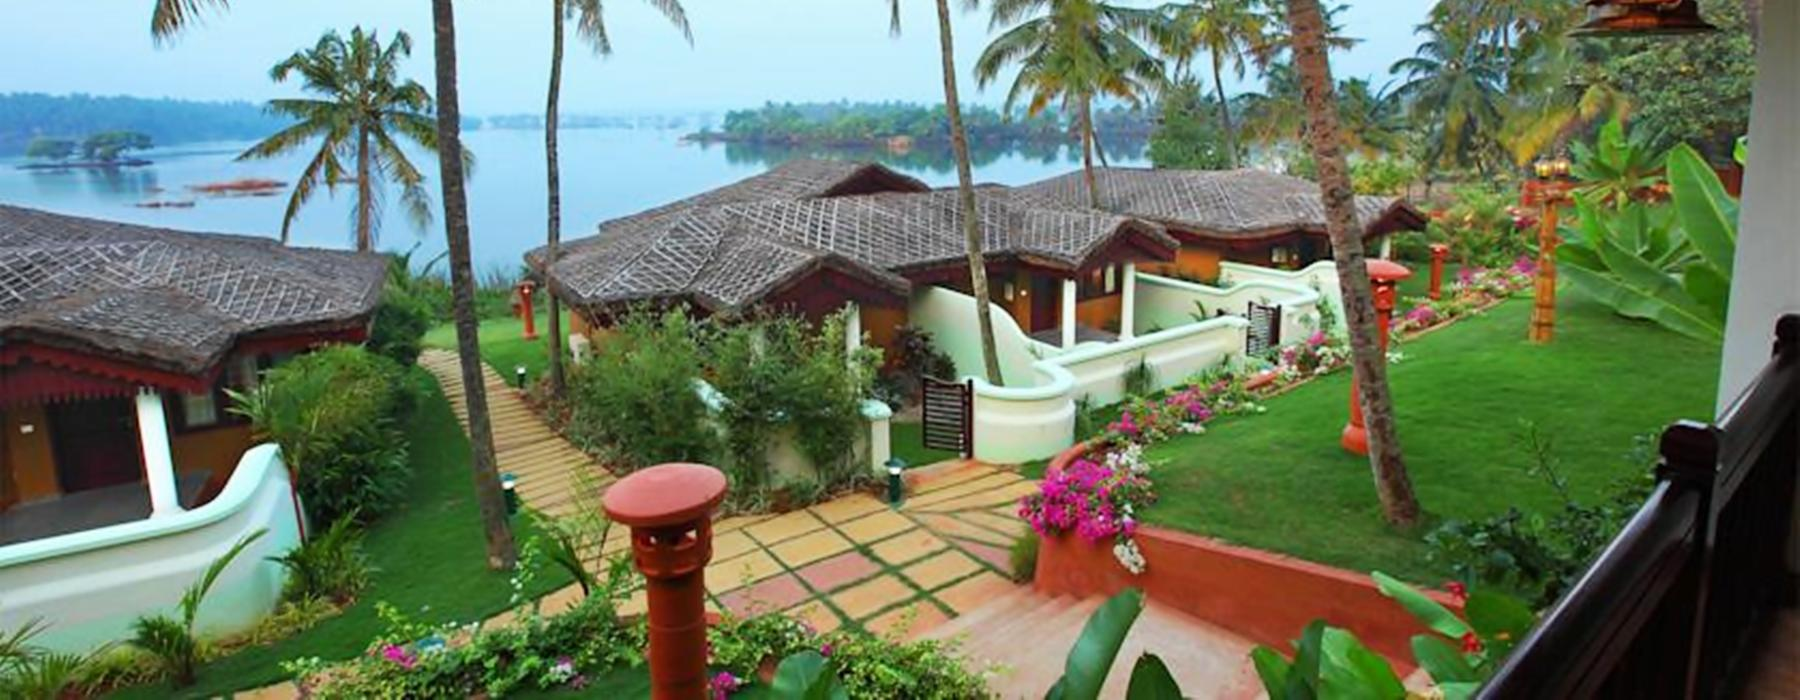 Fragrant Nature Backwater Resort & Ayurvedic Spa